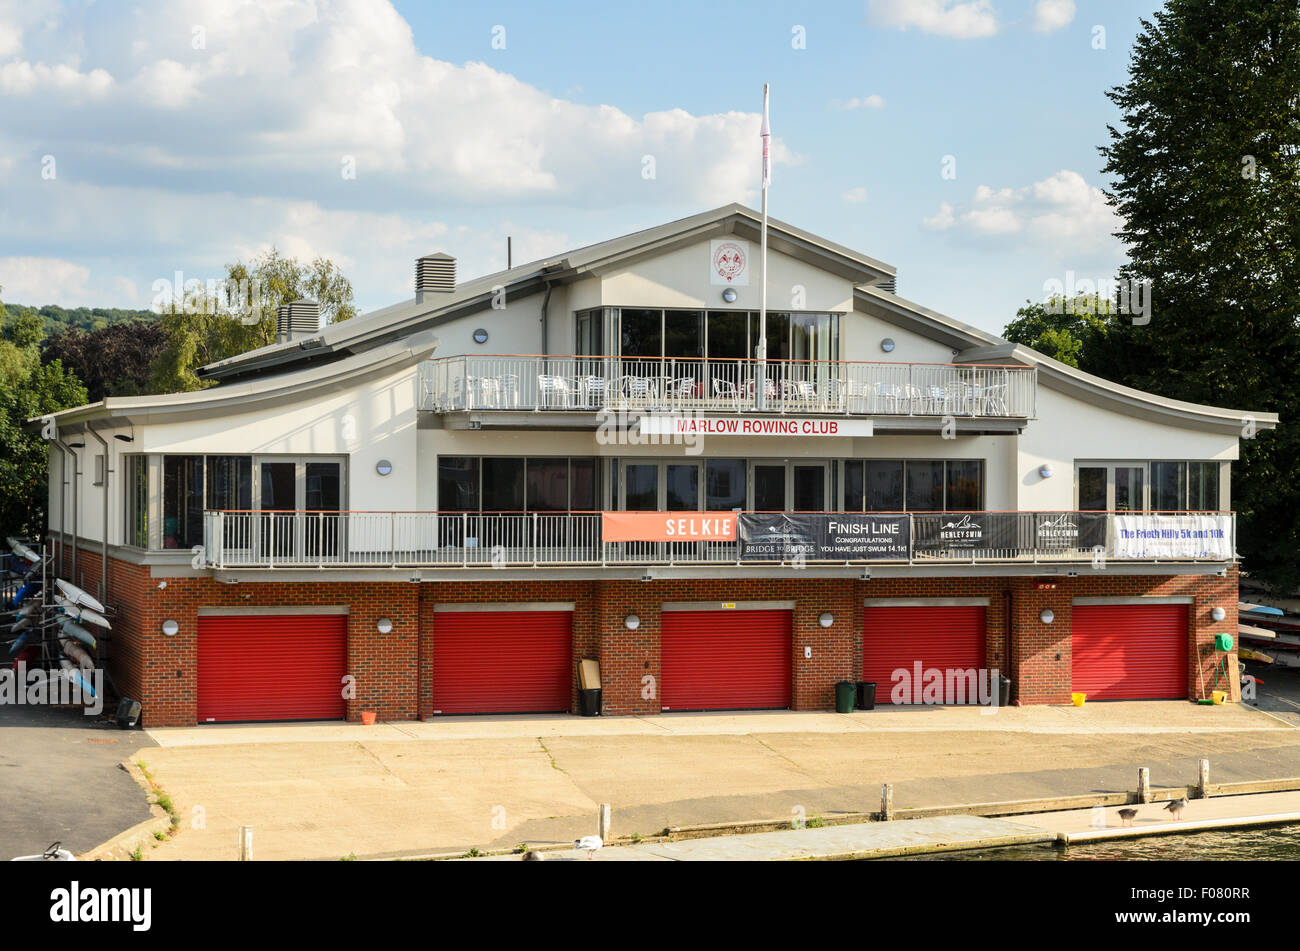 Marlow Rowing Club, Marlow, Buckinghamshire, England, UK. - Stock Image